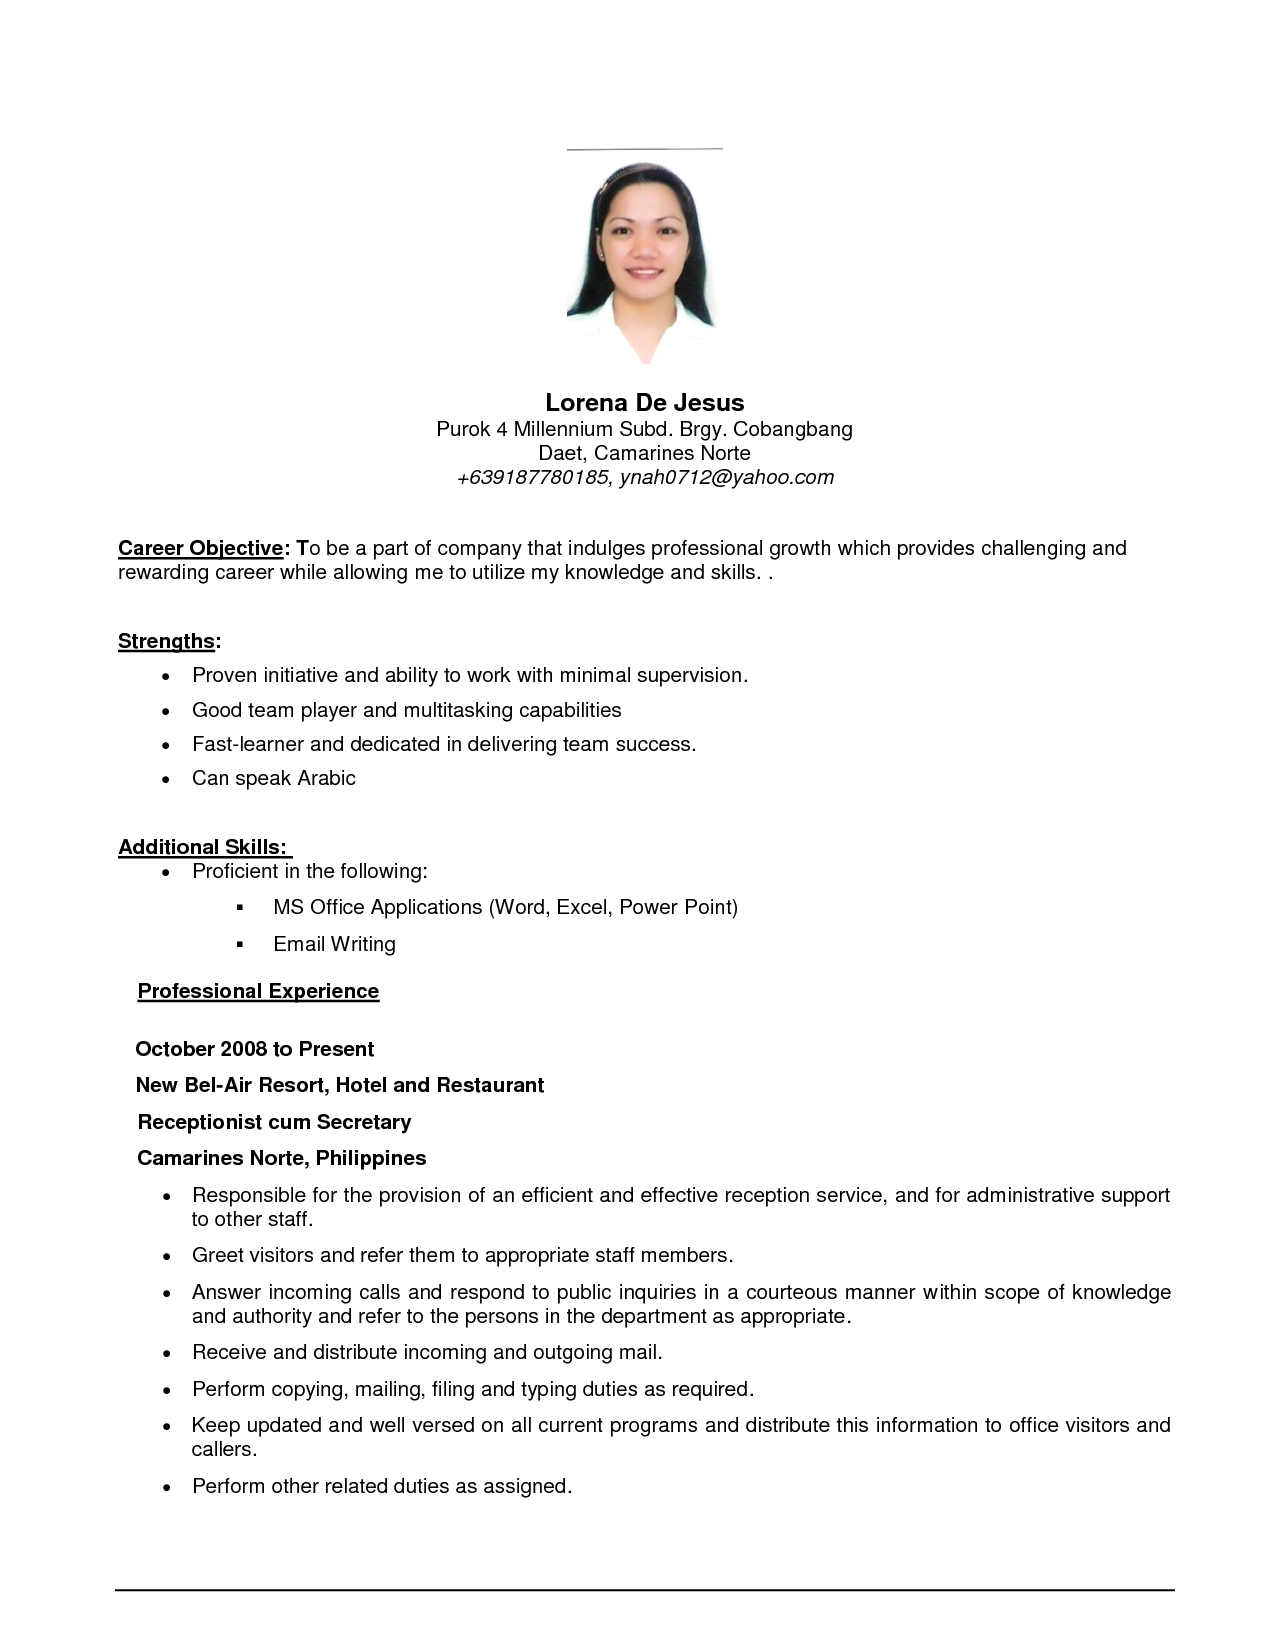 Resume Objective Examples  Job Resume Objective Examples Drupaldance E280a2 Aceeducation With